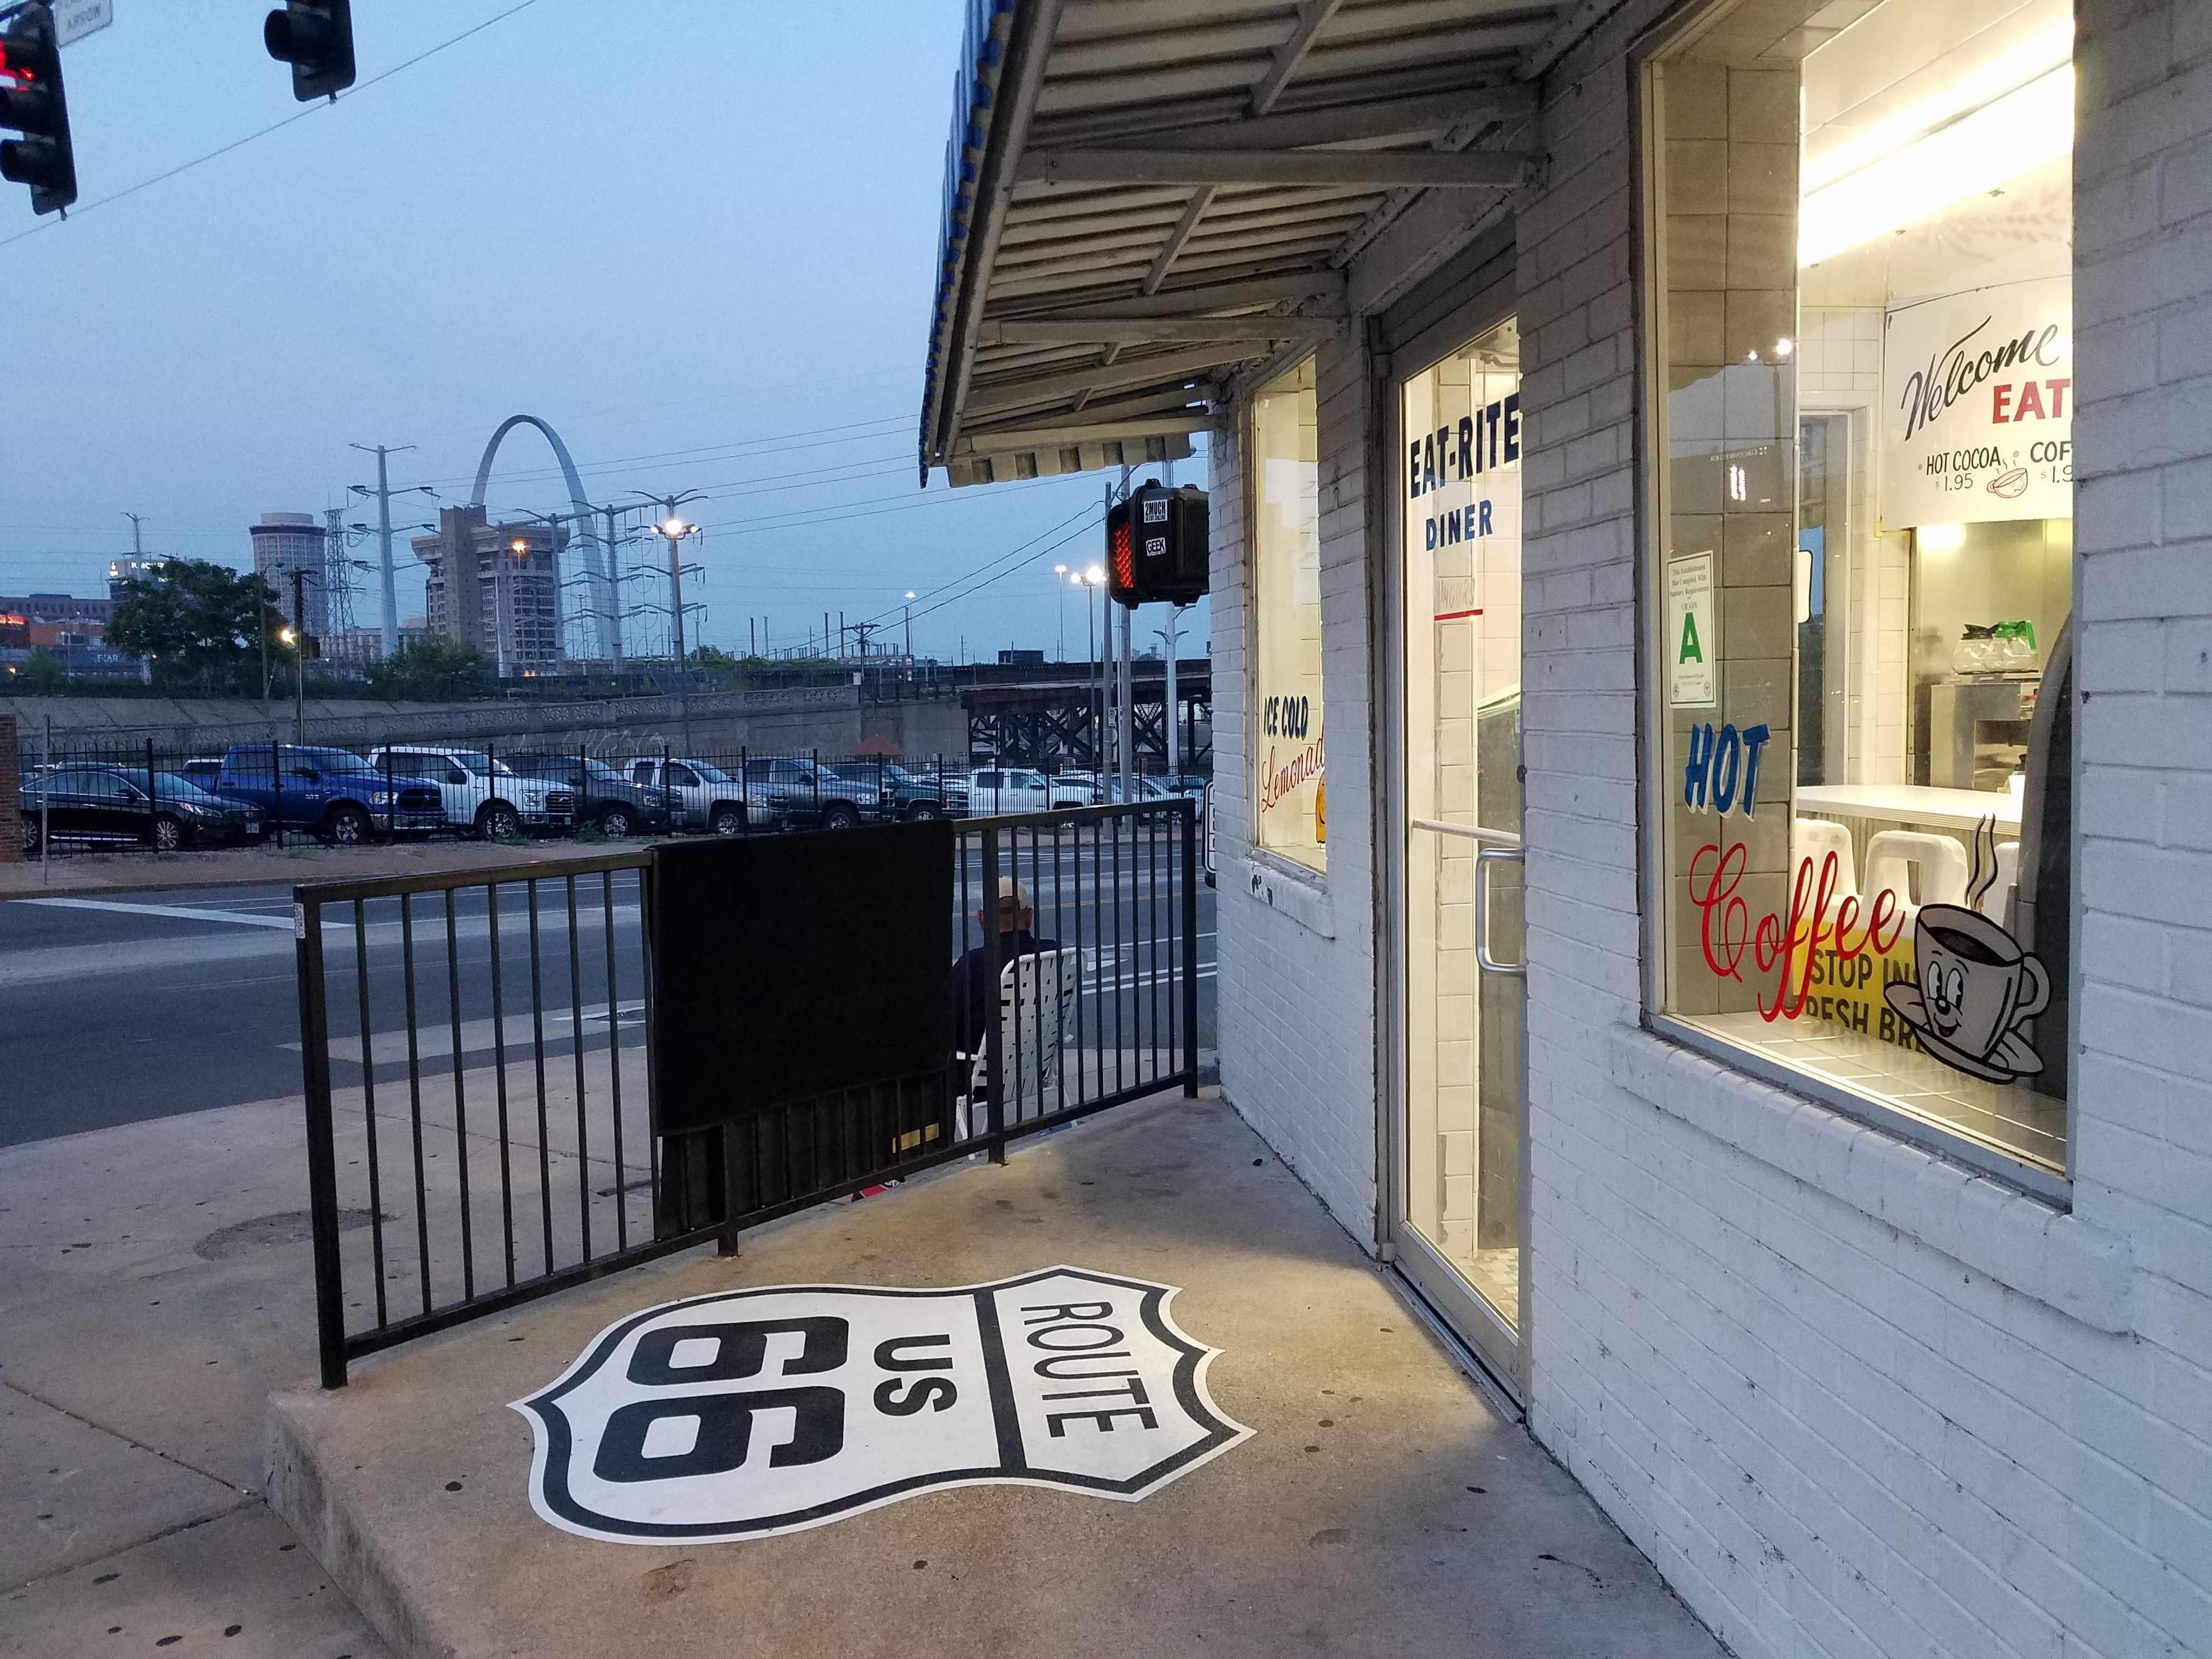 EAT-RITE Diner in St. Louis with Route 66 stencil